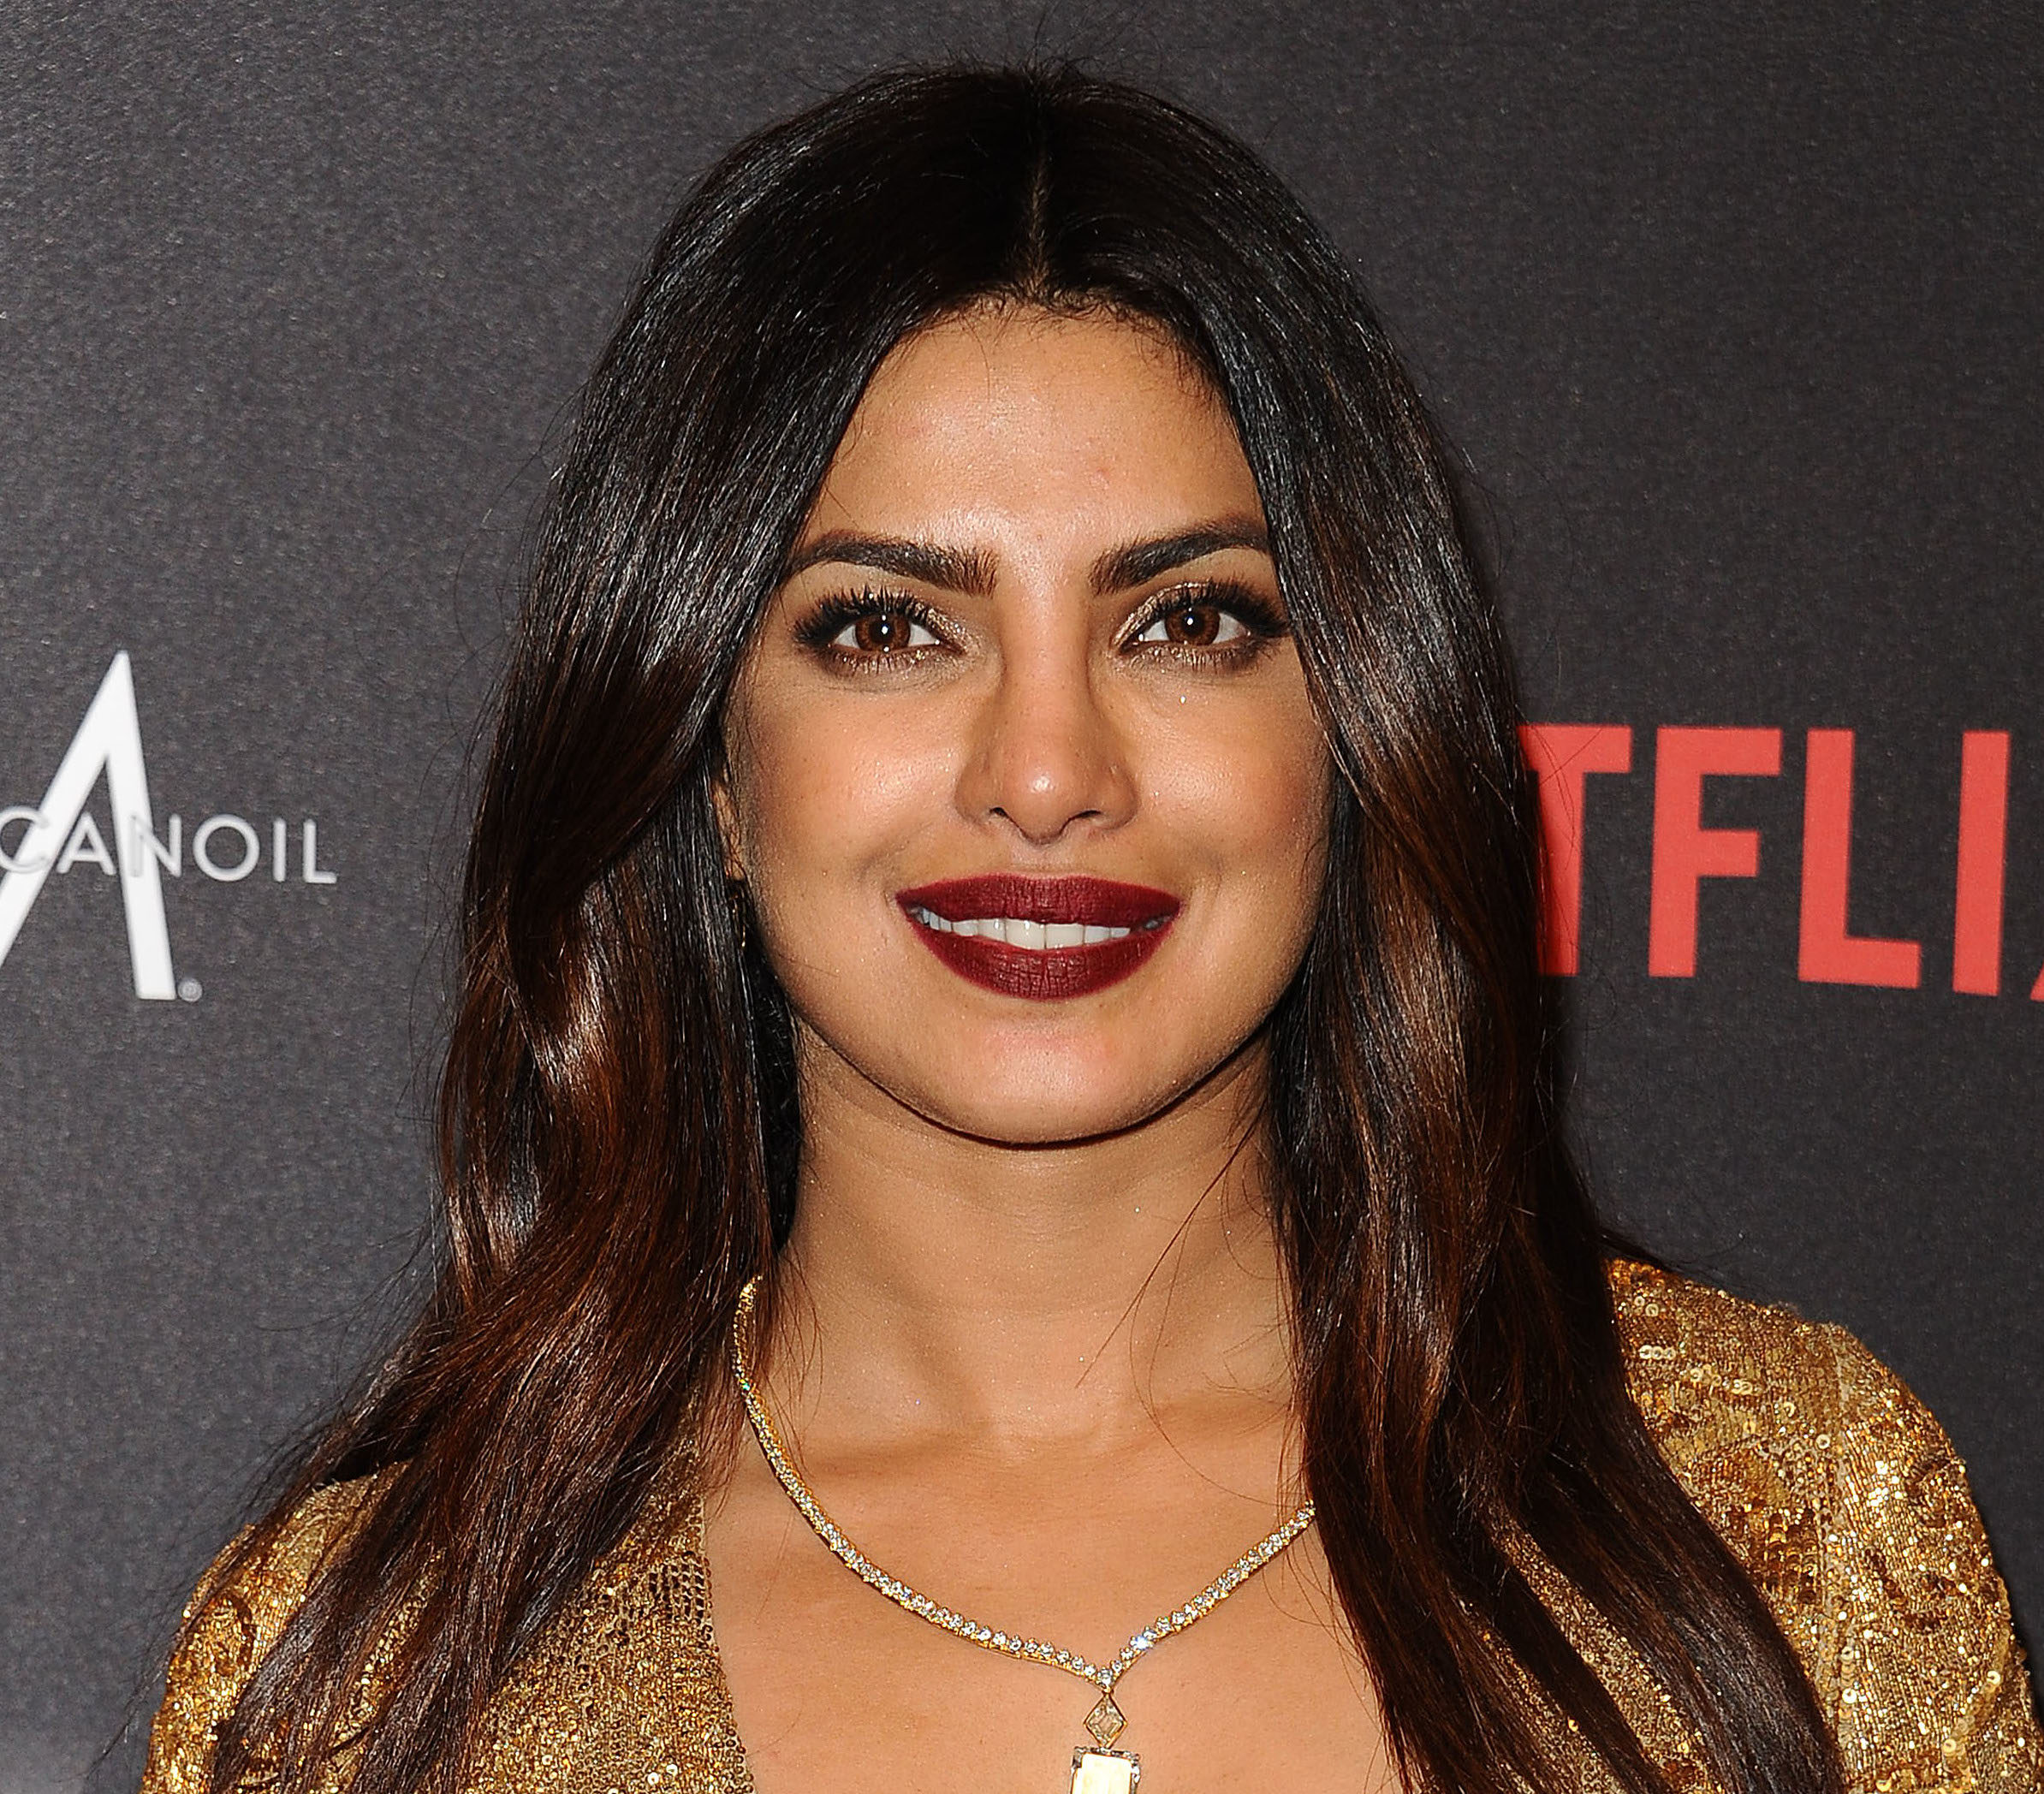 Priyanka Chopra looked as pretty as a Georgia peach on the People's Choice red carpet